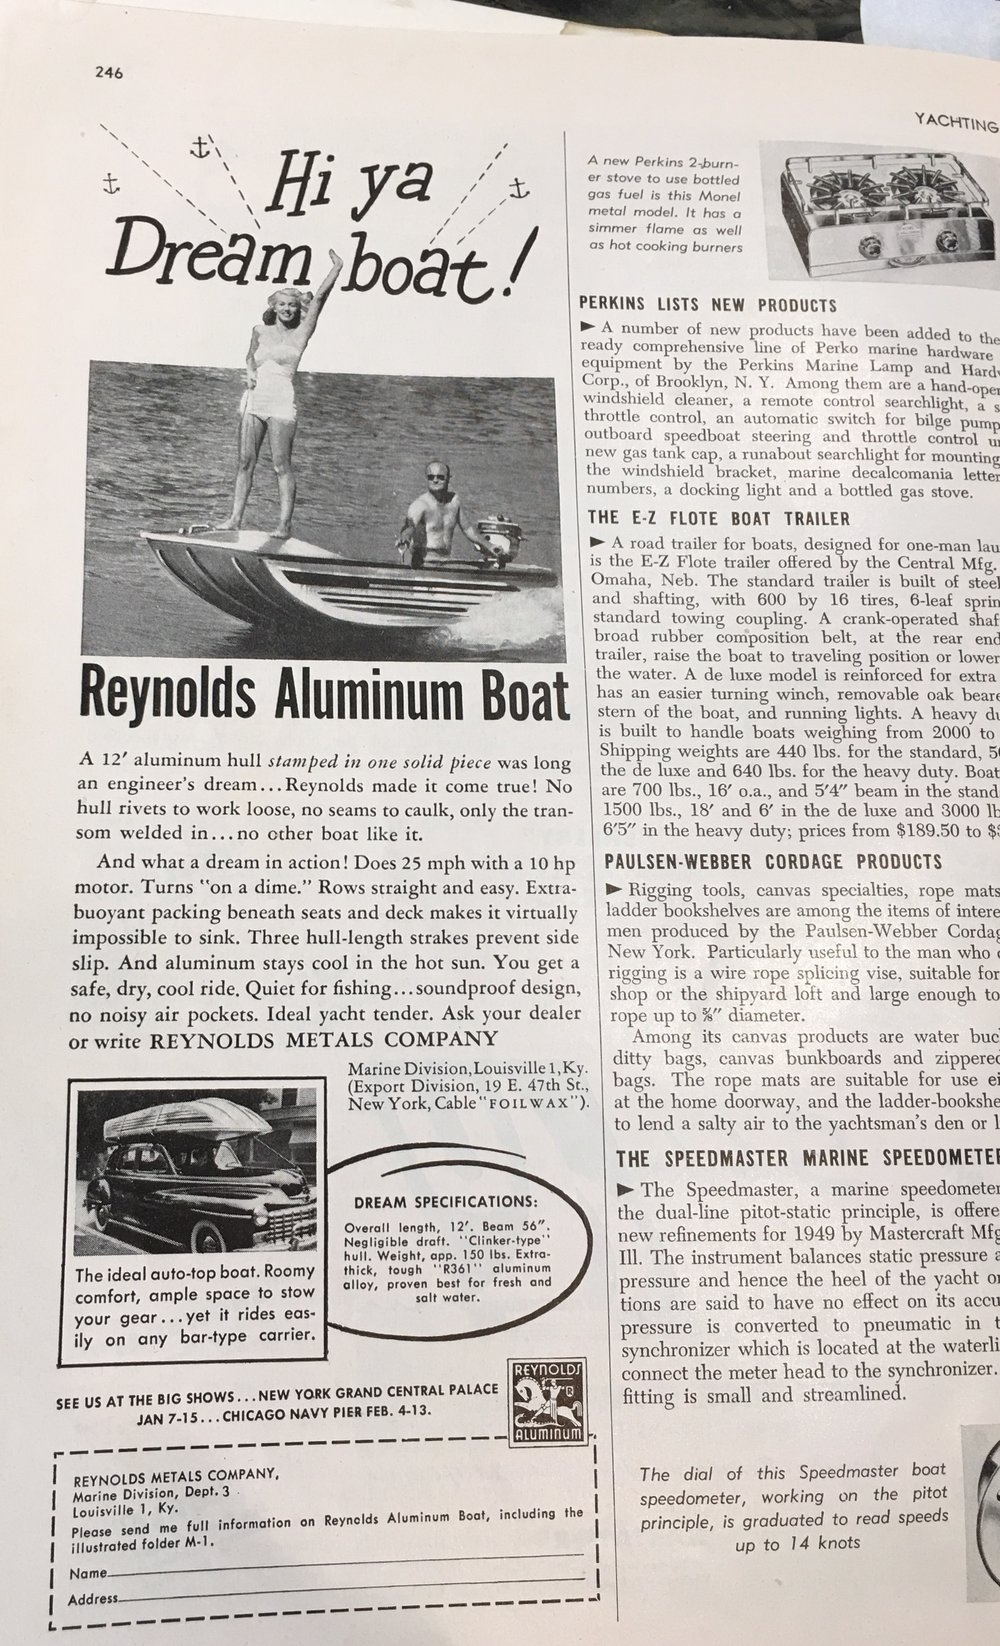 The Reynolds boat was stamped out of a single piece of aluminum. Check it out at the Big Shows in New York and Chicago!